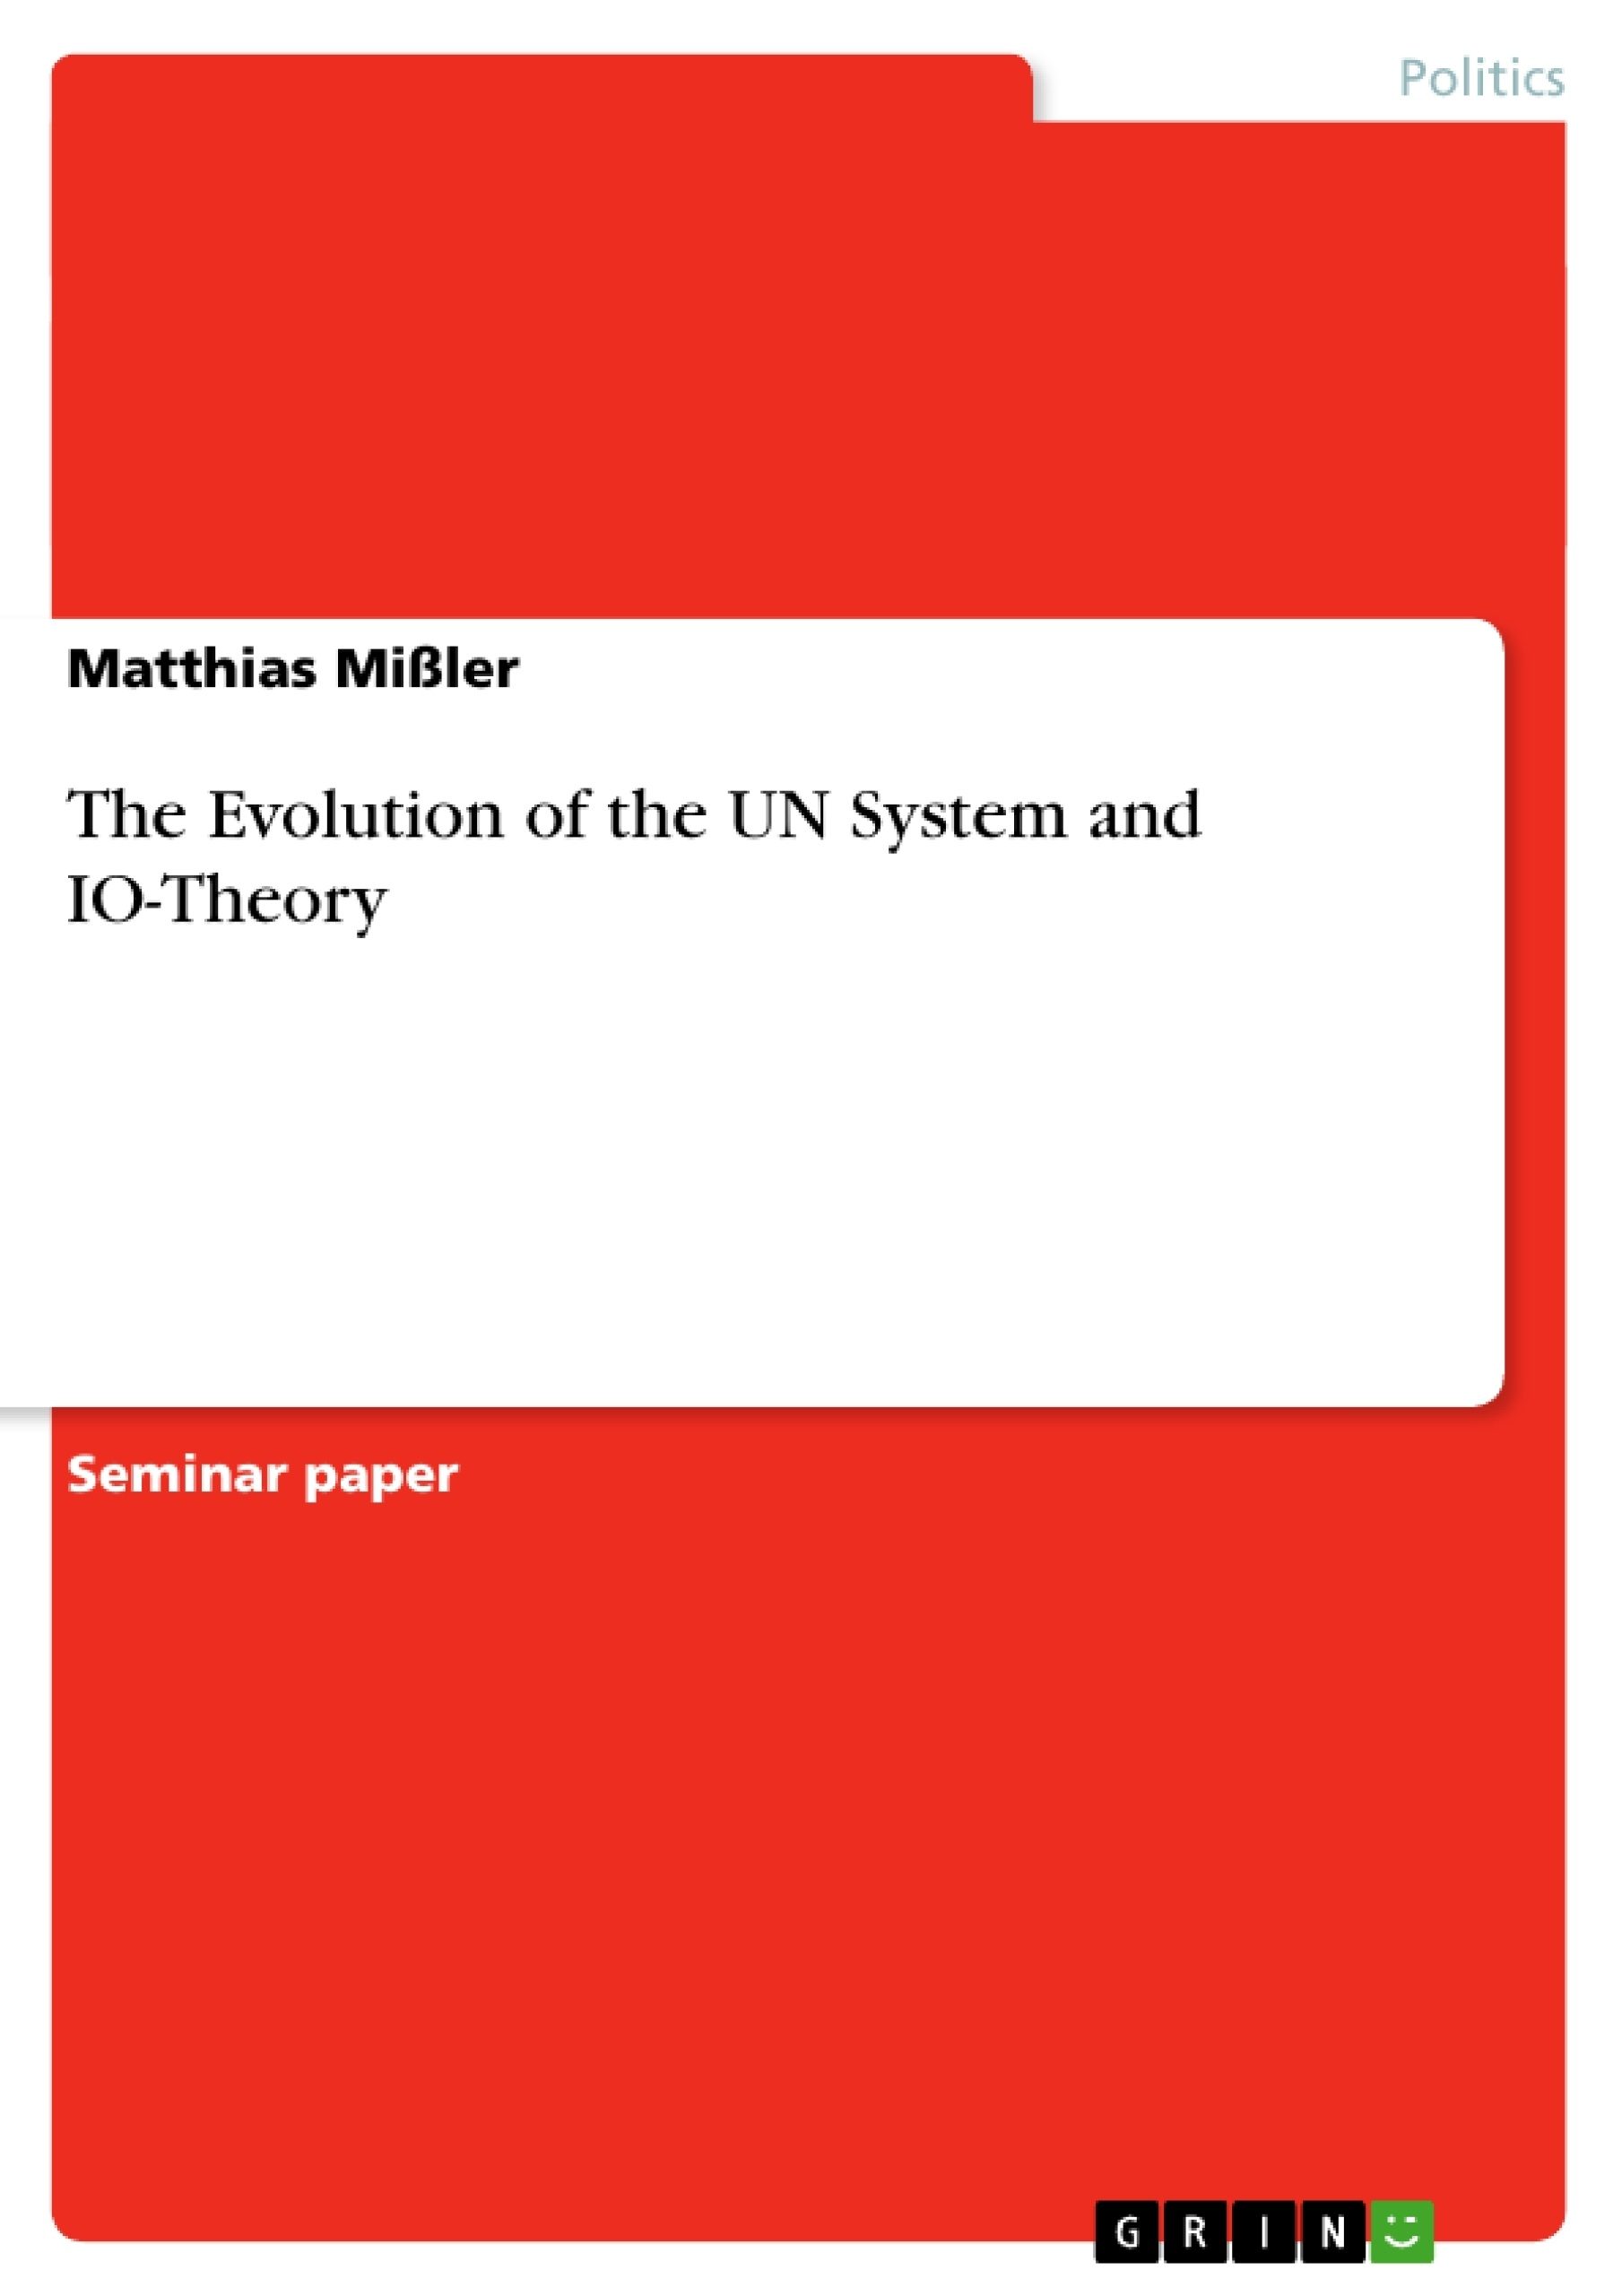 Title: The Evolution of the UN System and IO-Theory